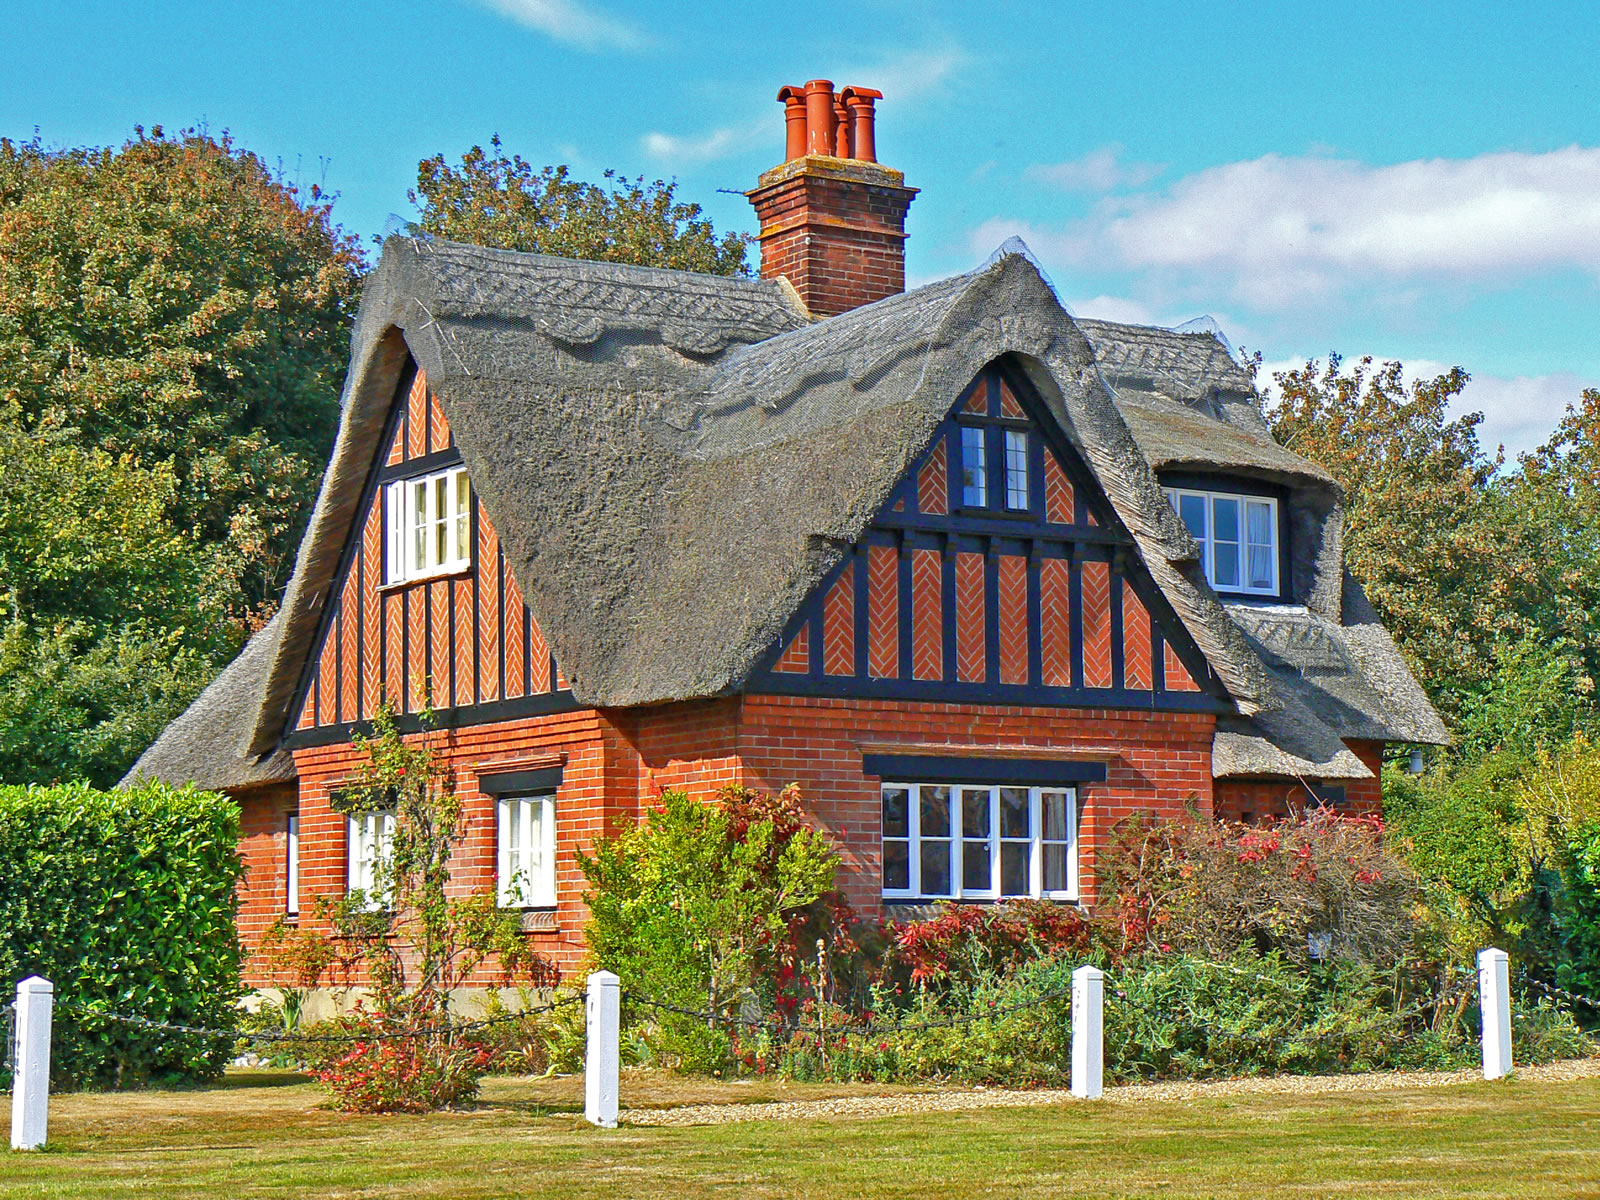 Salhouse norfolk broads including woodbastwick salhouse - Fachadas de casas rusticas ...